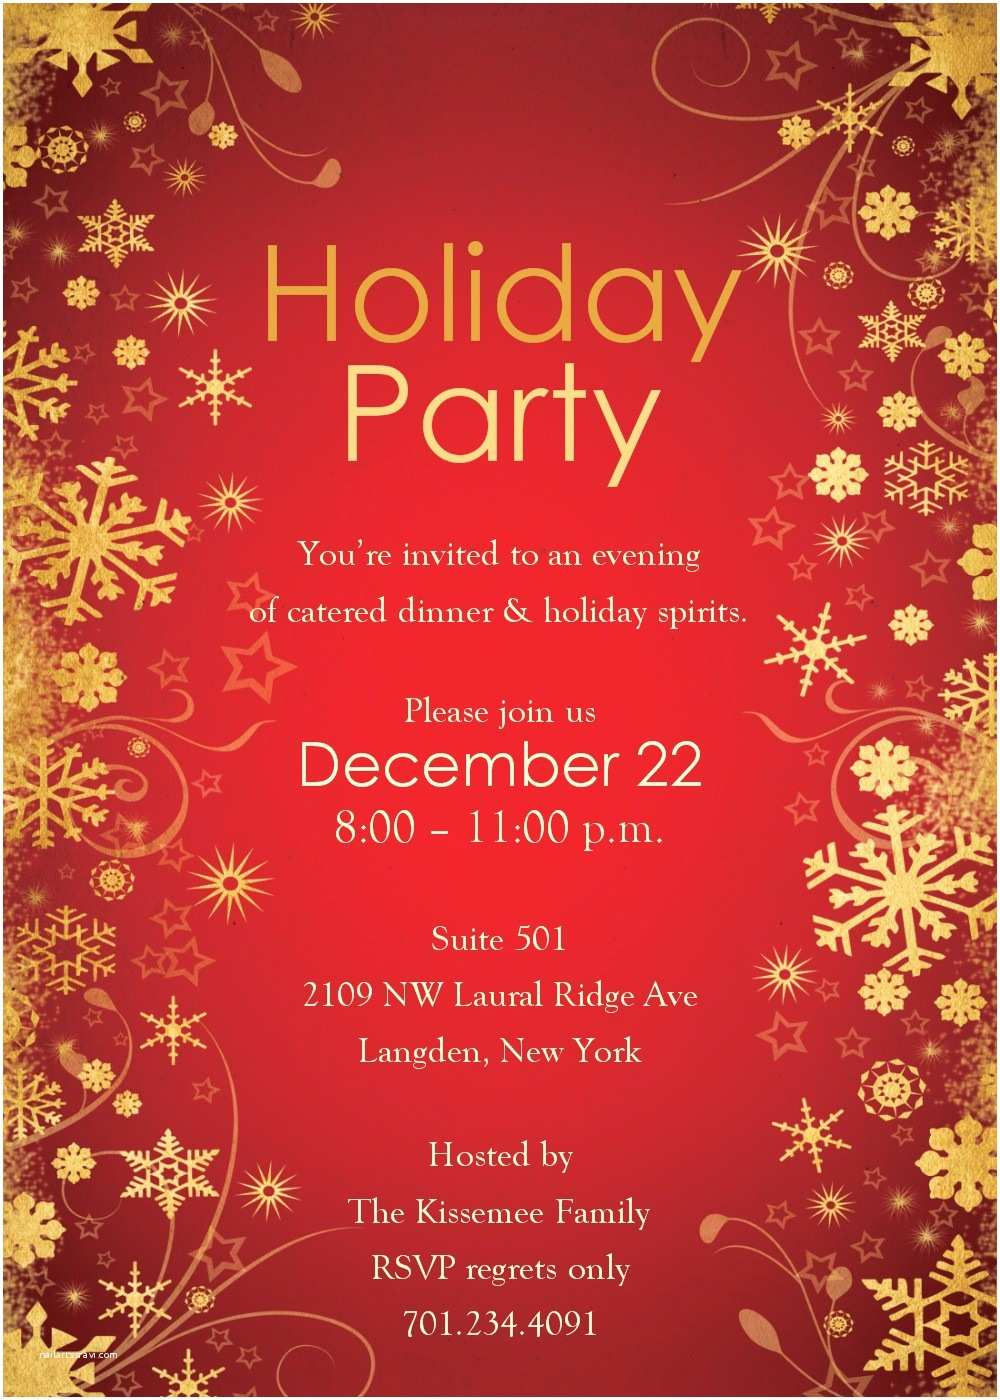 Christmas Party Invitation Wording Free Holiday Party Invitation Templates